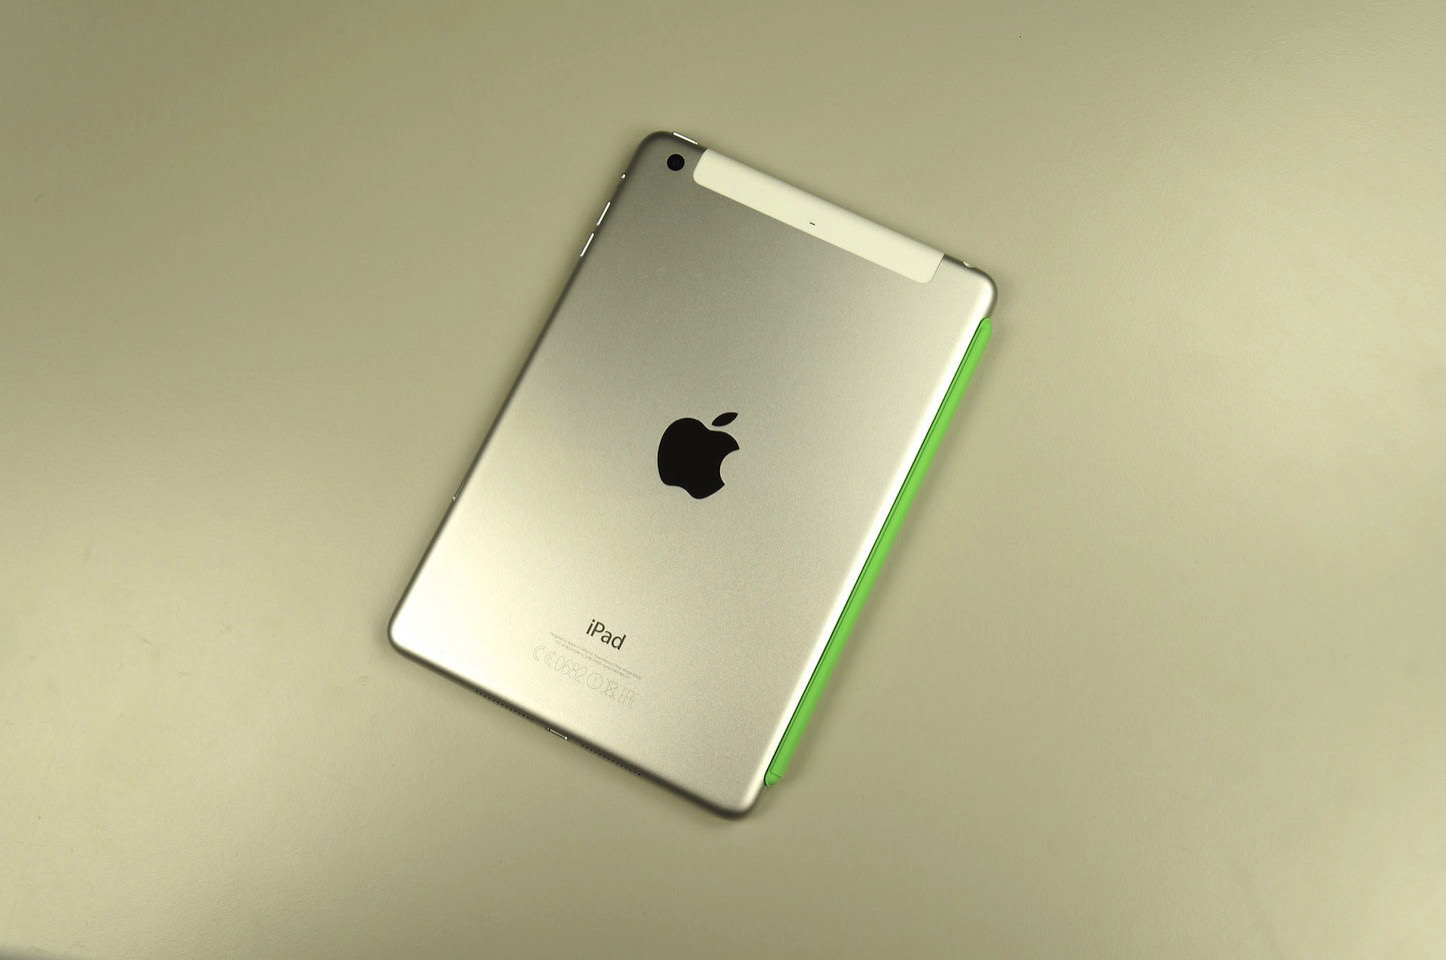 Ipad mini 4 with case green